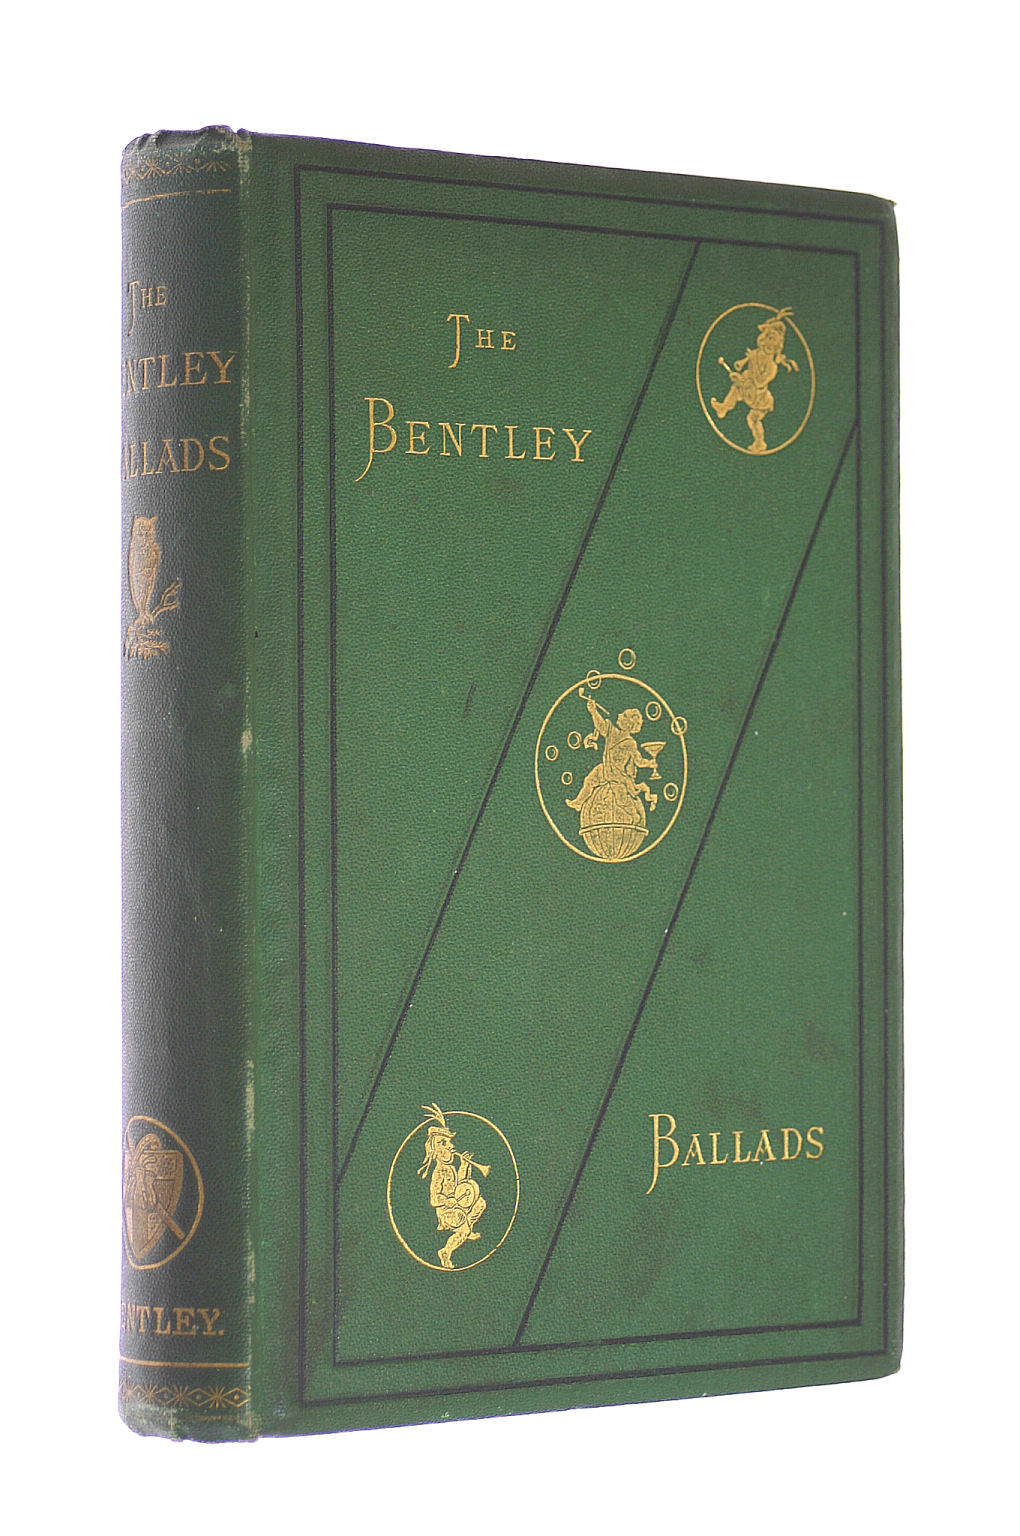 """Image for The Bentley Ballads, Comprising The Tipperary Hall Ballads, now first republished from """"Bentley's Miscellany,"""" (1846)"""